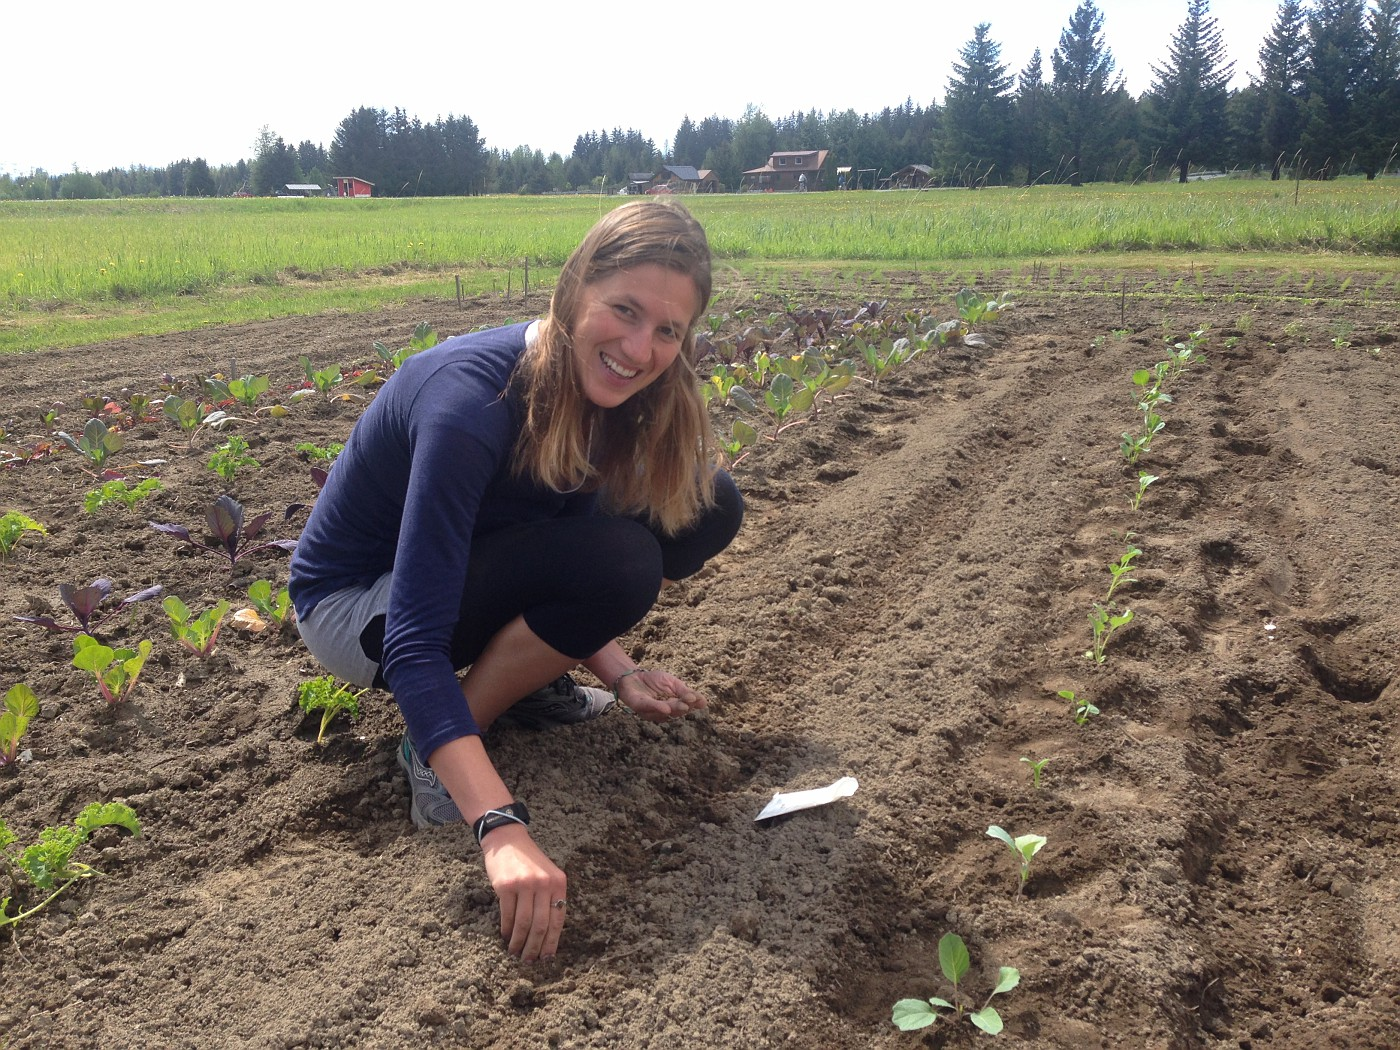 Planting cabbage, kale, and other starts